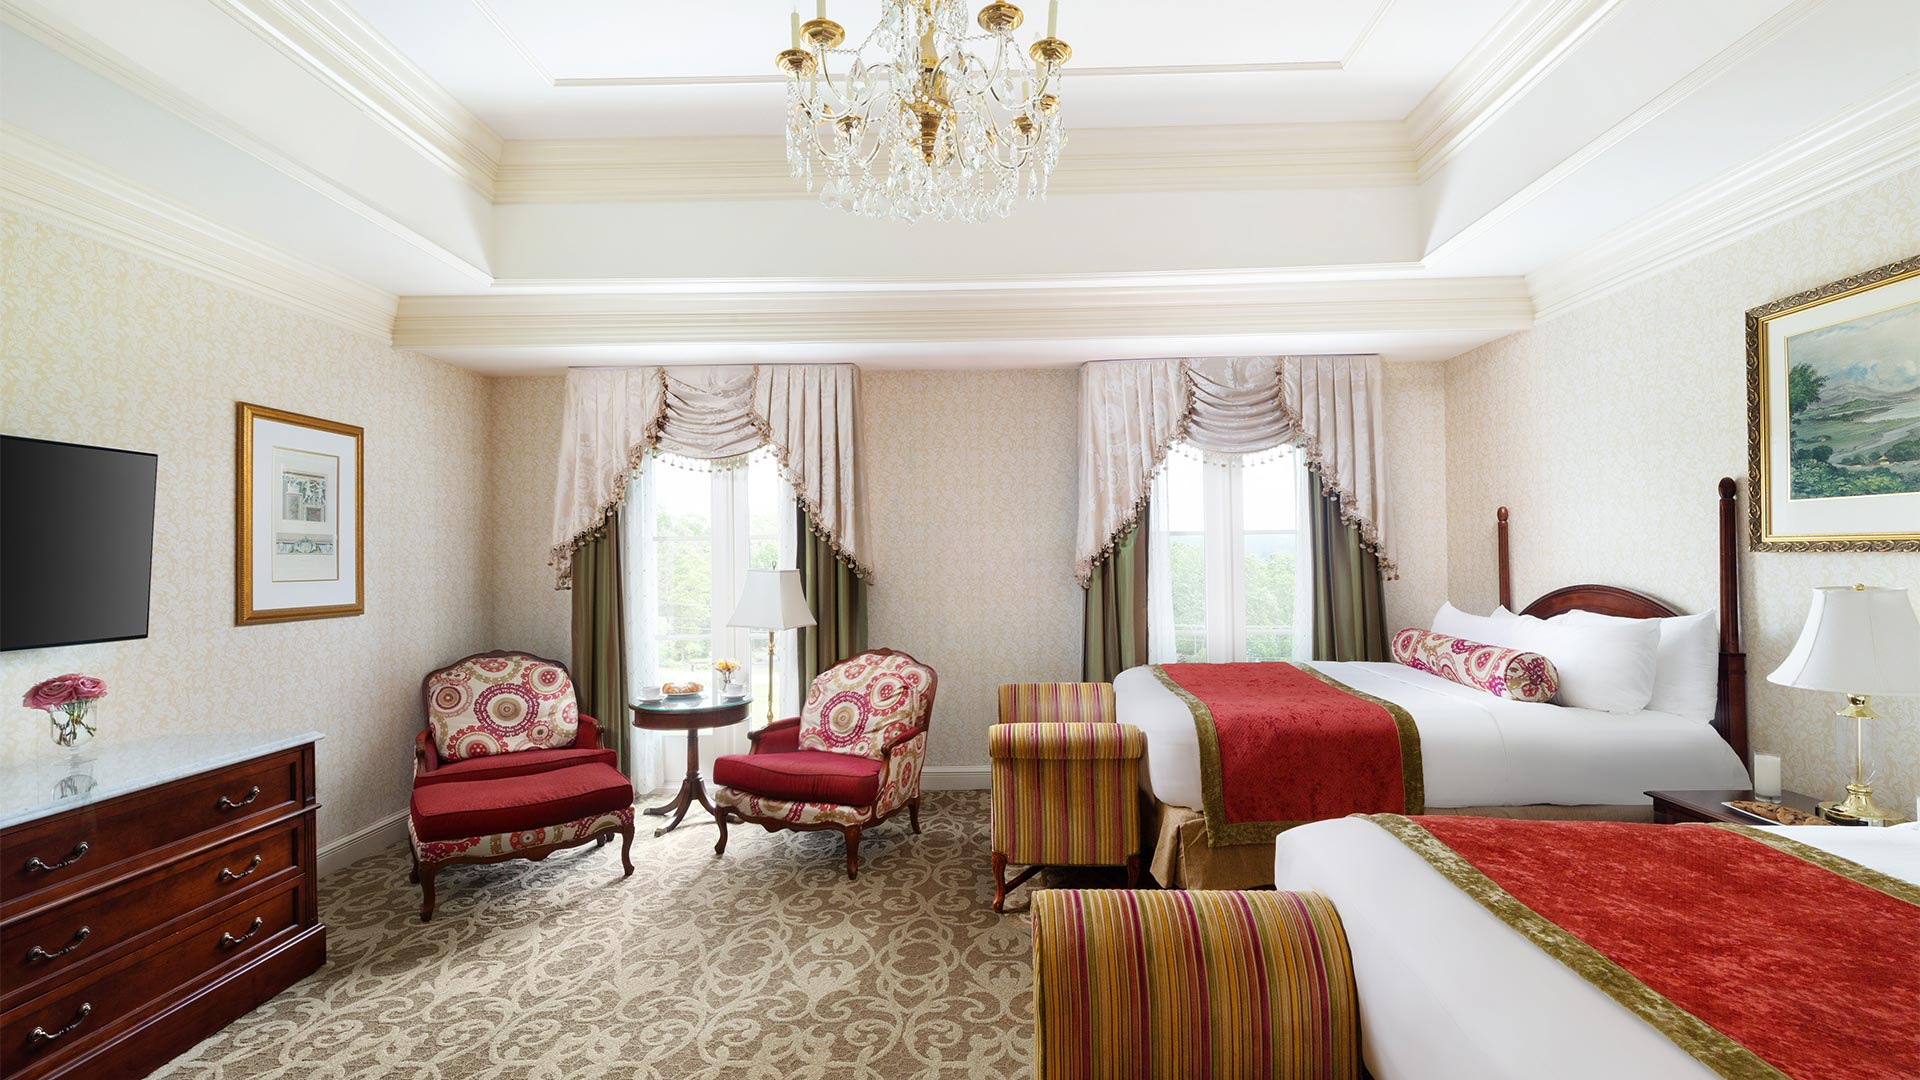 interior shot of The Chateau's Double accommodation. there are two queen beds, windows overlooking the resort grounds and a small sitting area.